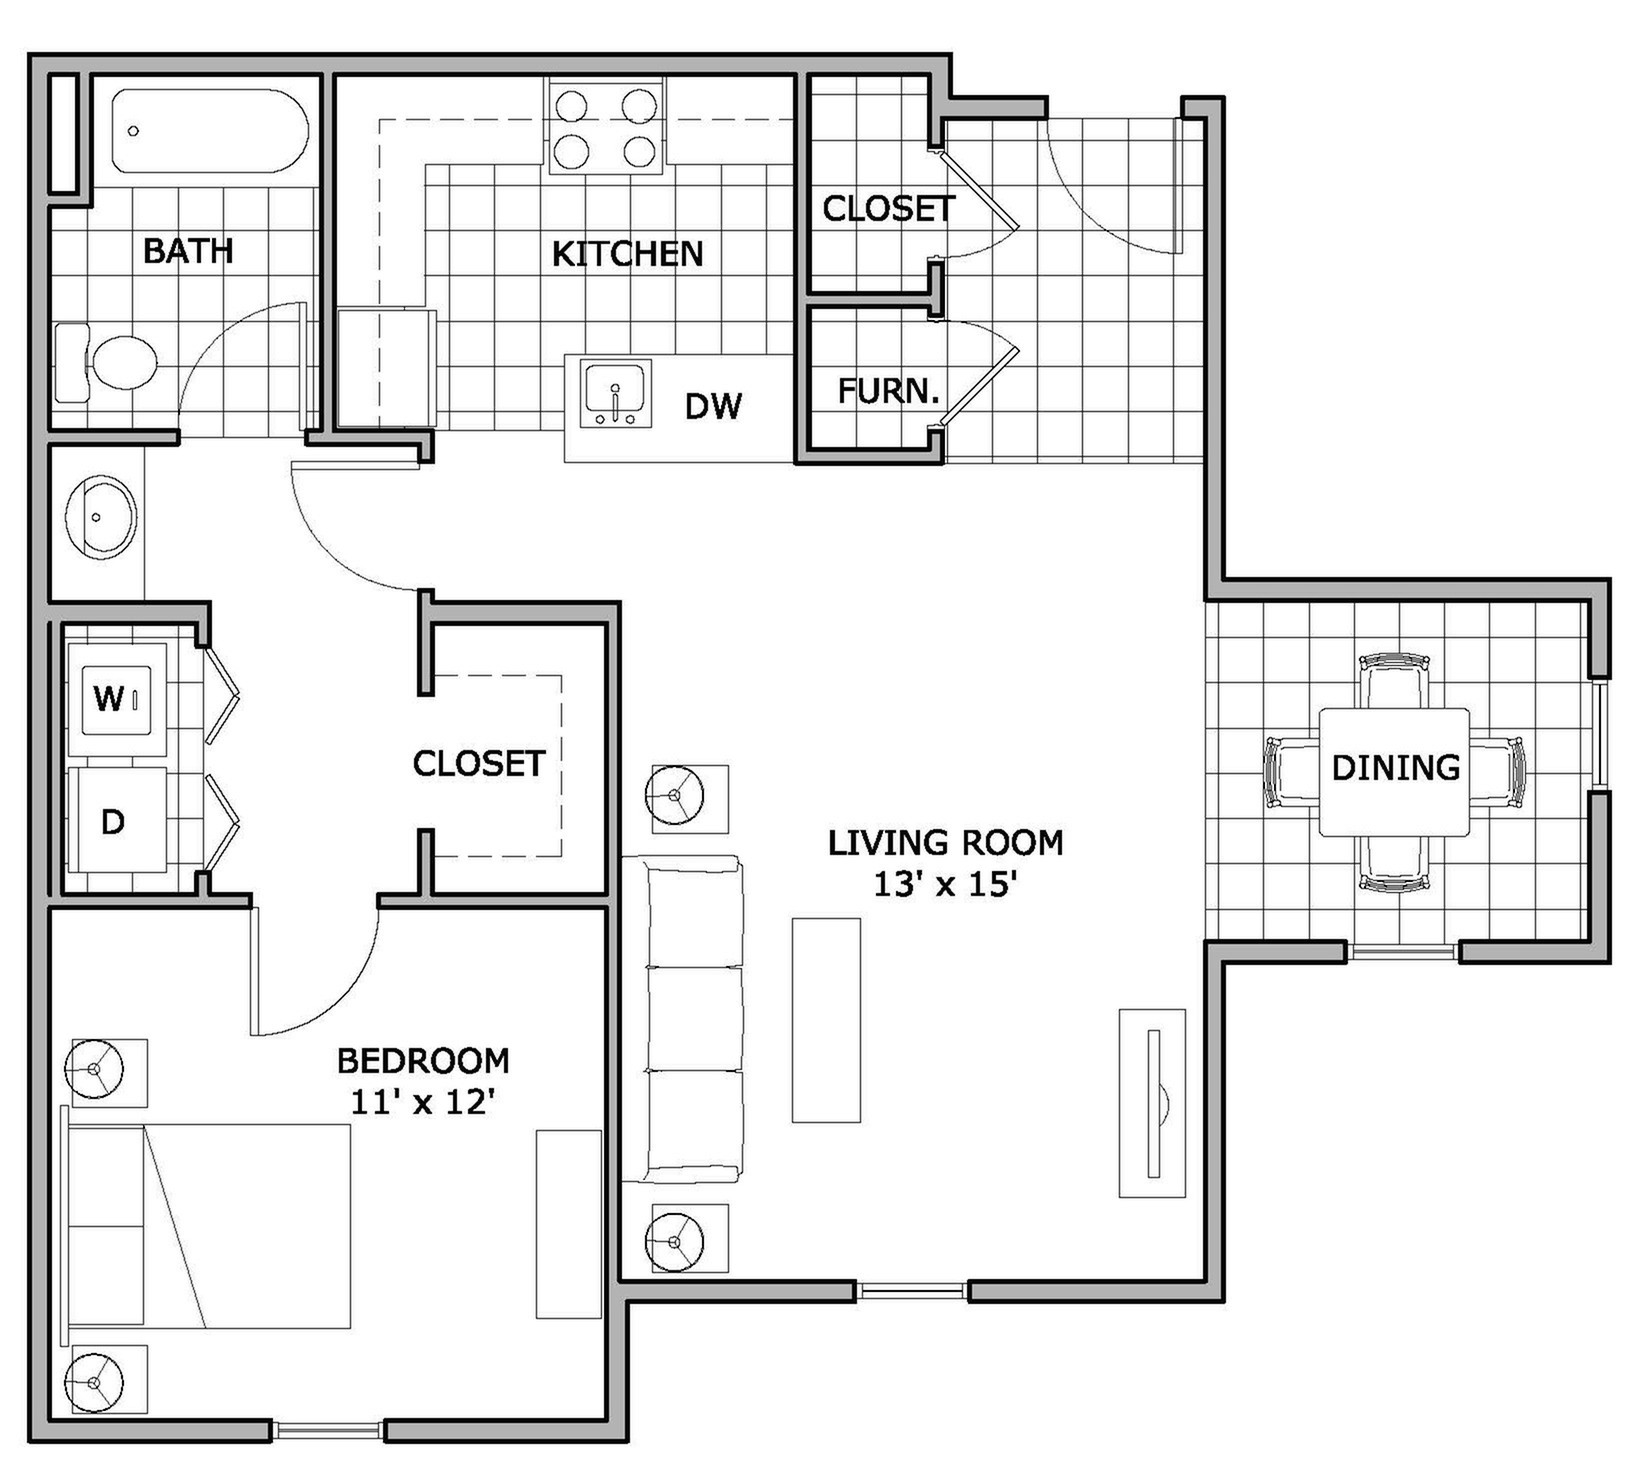 1 bed 1 bath apartment in springfield mo the abbey for Accessible house plans